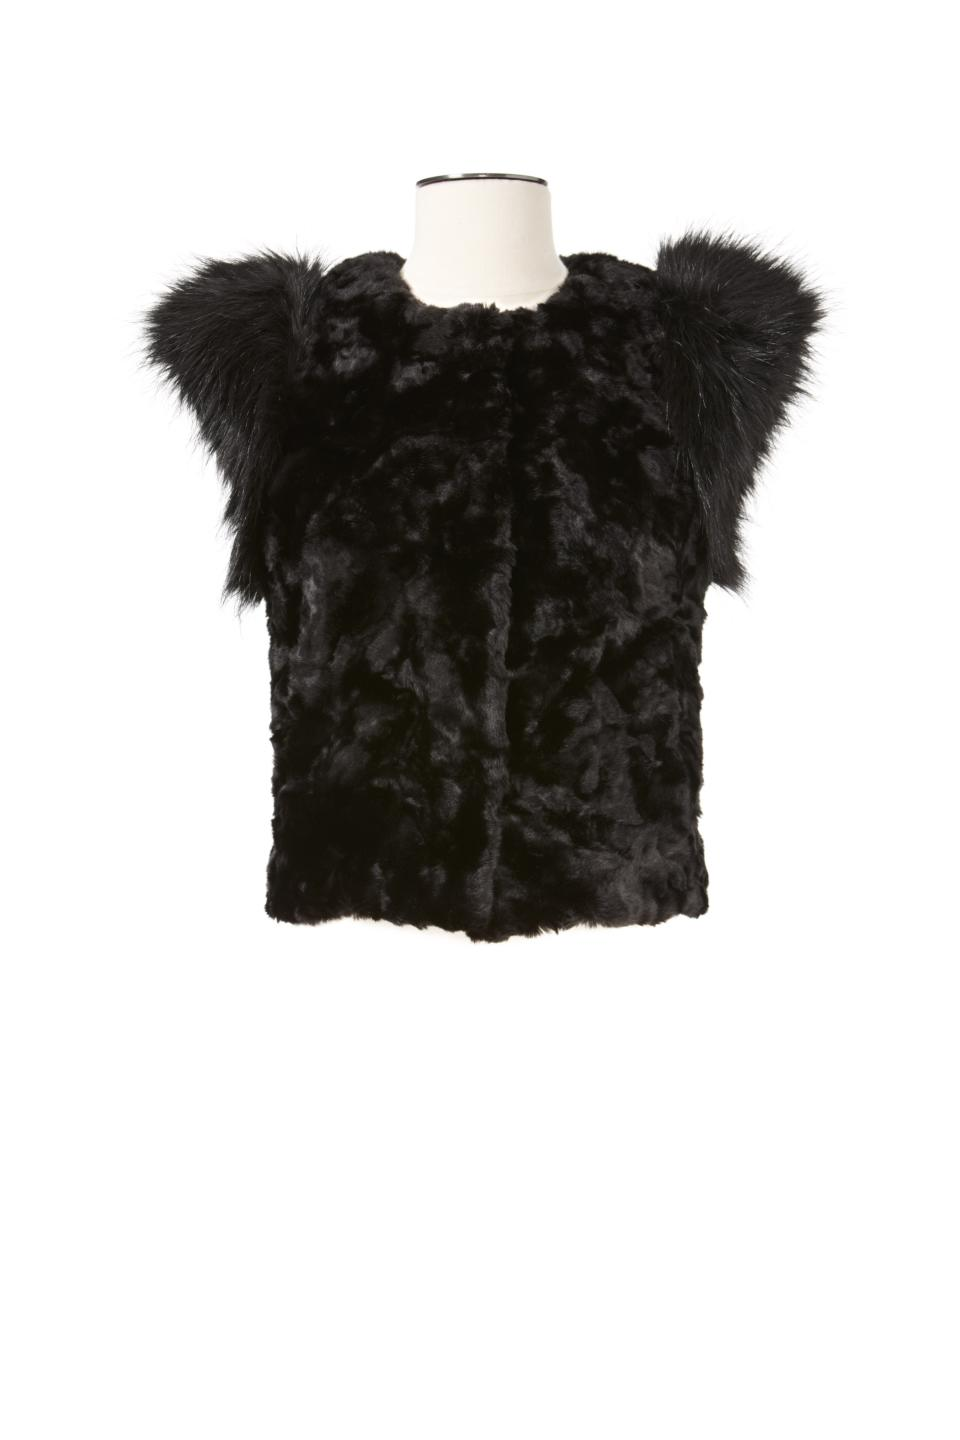 <b>Skaist-Taylor for Target + Neiman Marcus Holiday Collection Vest</b><br><br> Price: $79.99<br><br> Size: XS – XL<br><br>